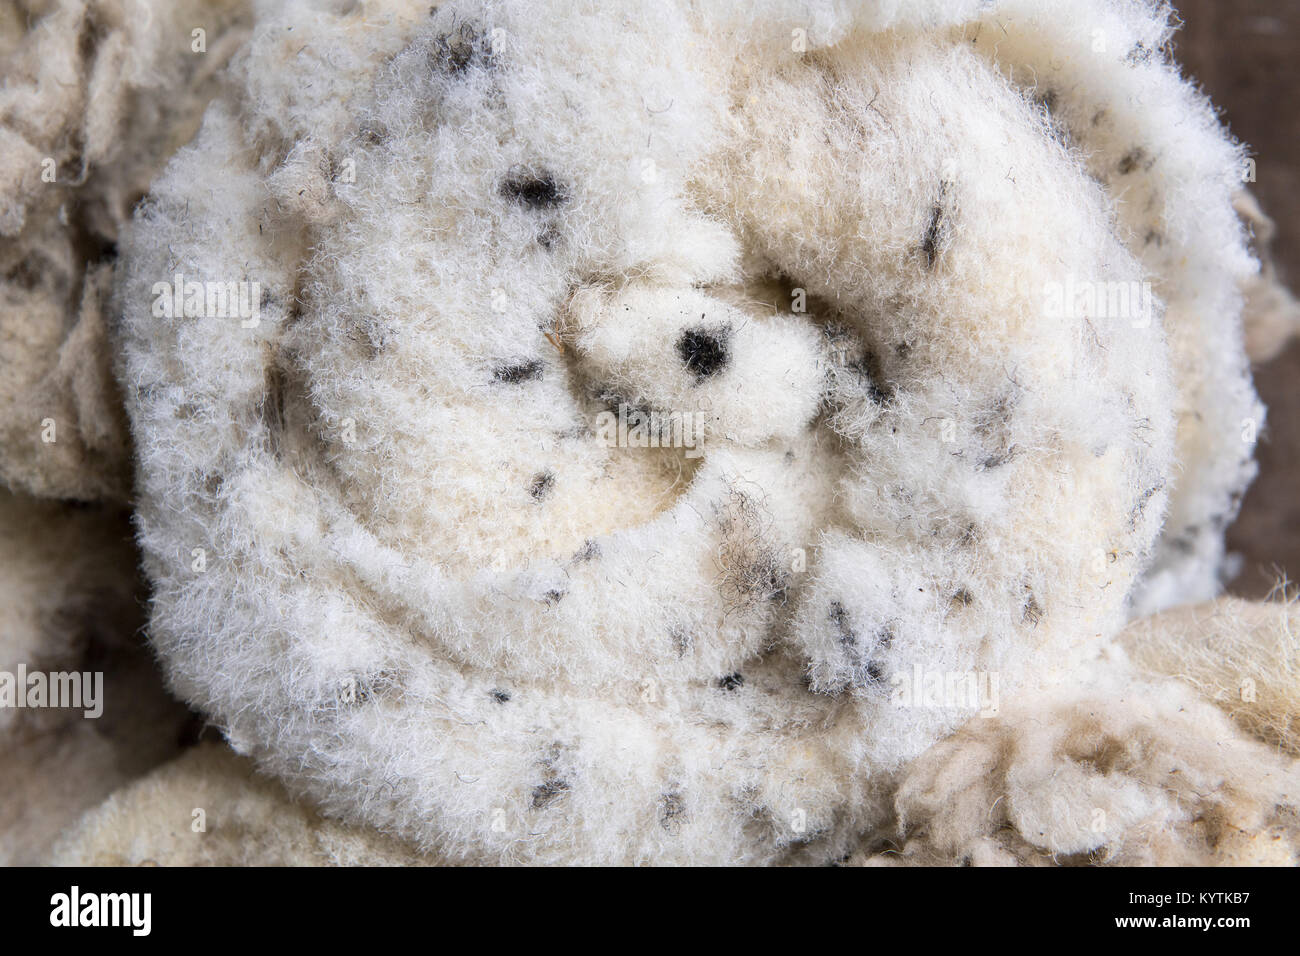 Newly clipped fleeces of wool off swaledale ewes. Yorkshire, UK. - Stock Image